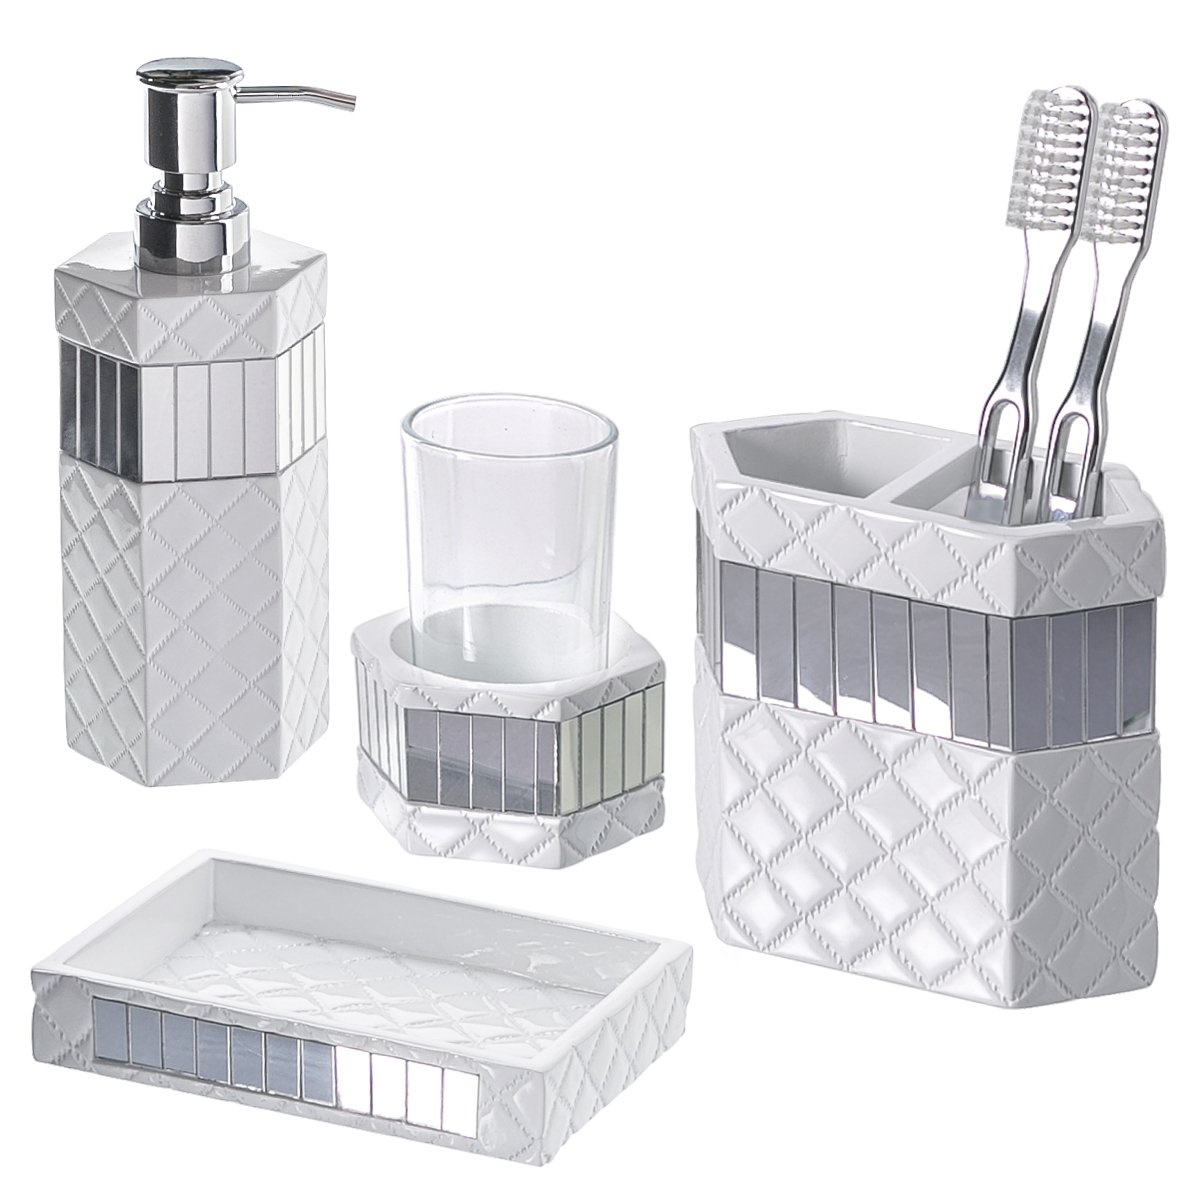 Amazon Com Creative Scents Quilted Mirror Bathroom Accessories Set 4 Piece Includes Soap Dispenser Toothbrush Holder Tumbler Soap Dish Gift Package